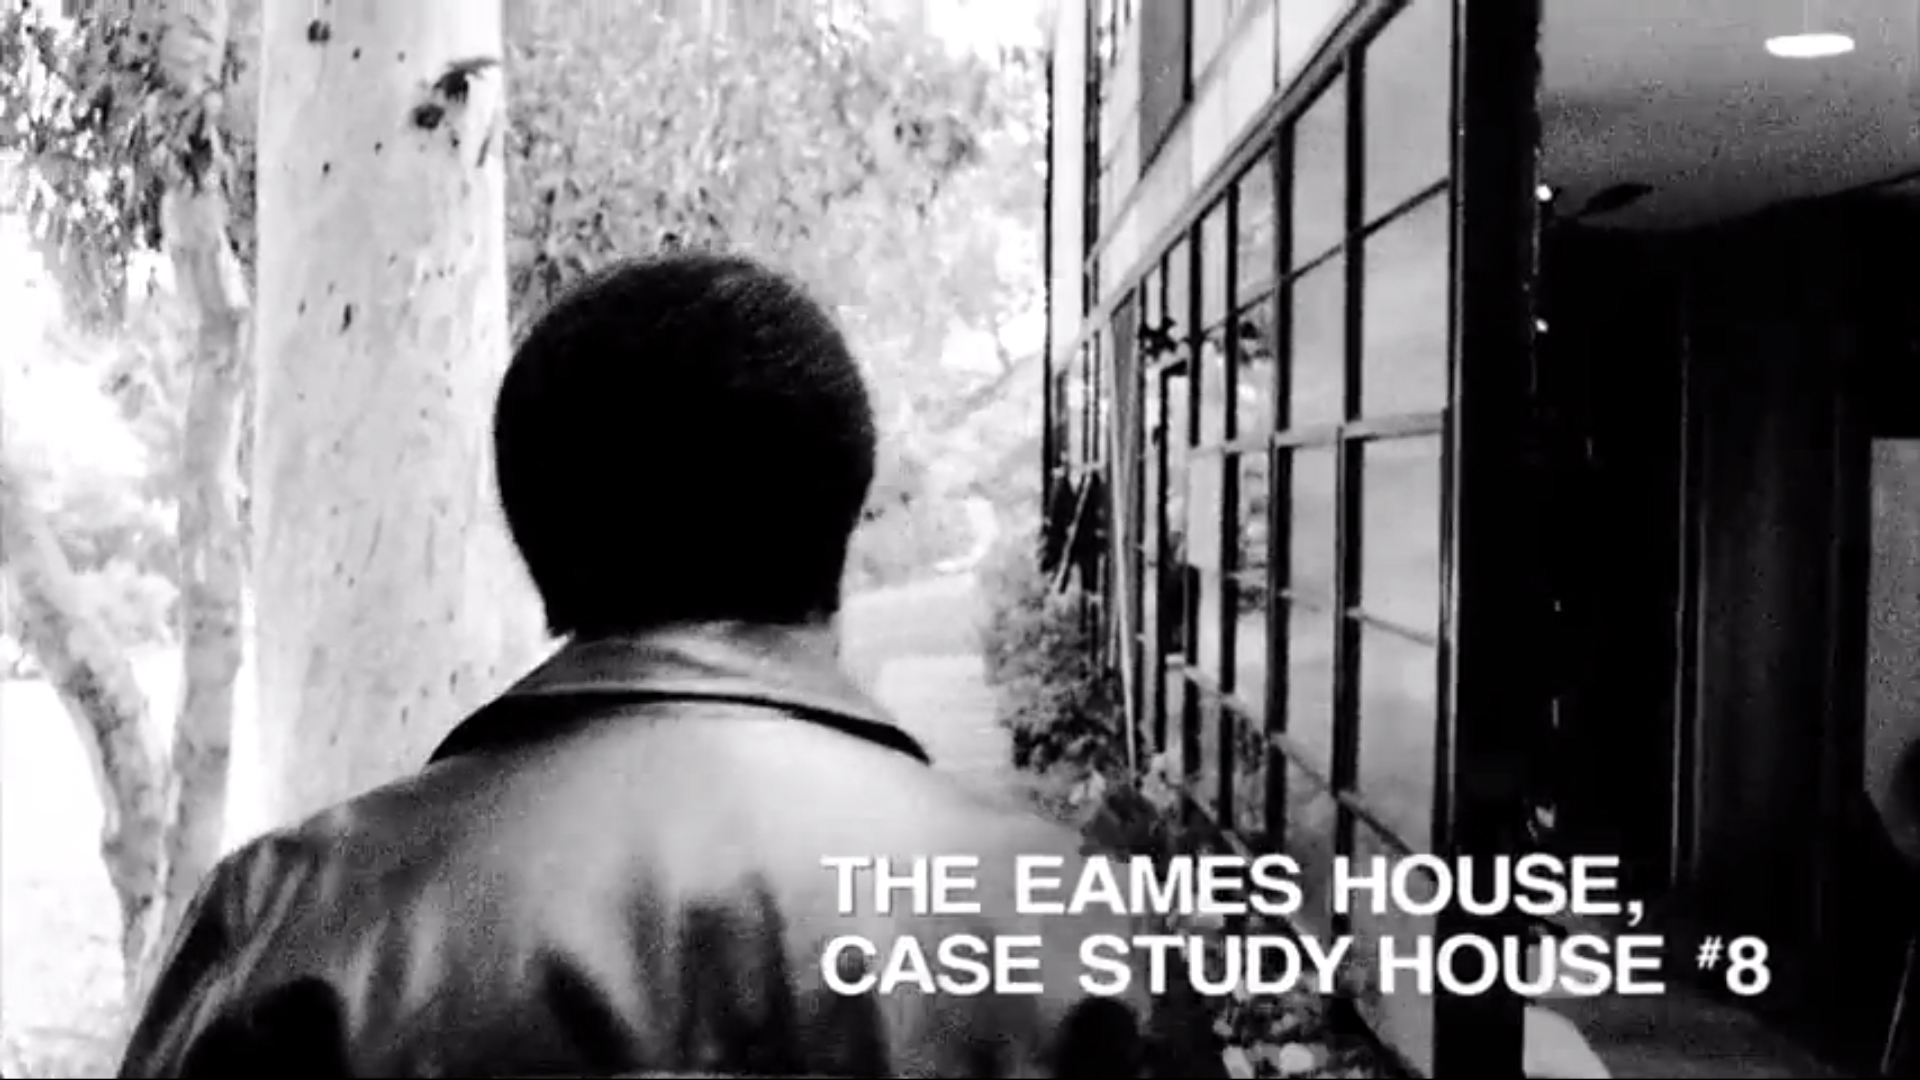 Ice cubes house compton ice cube celebrates the eames